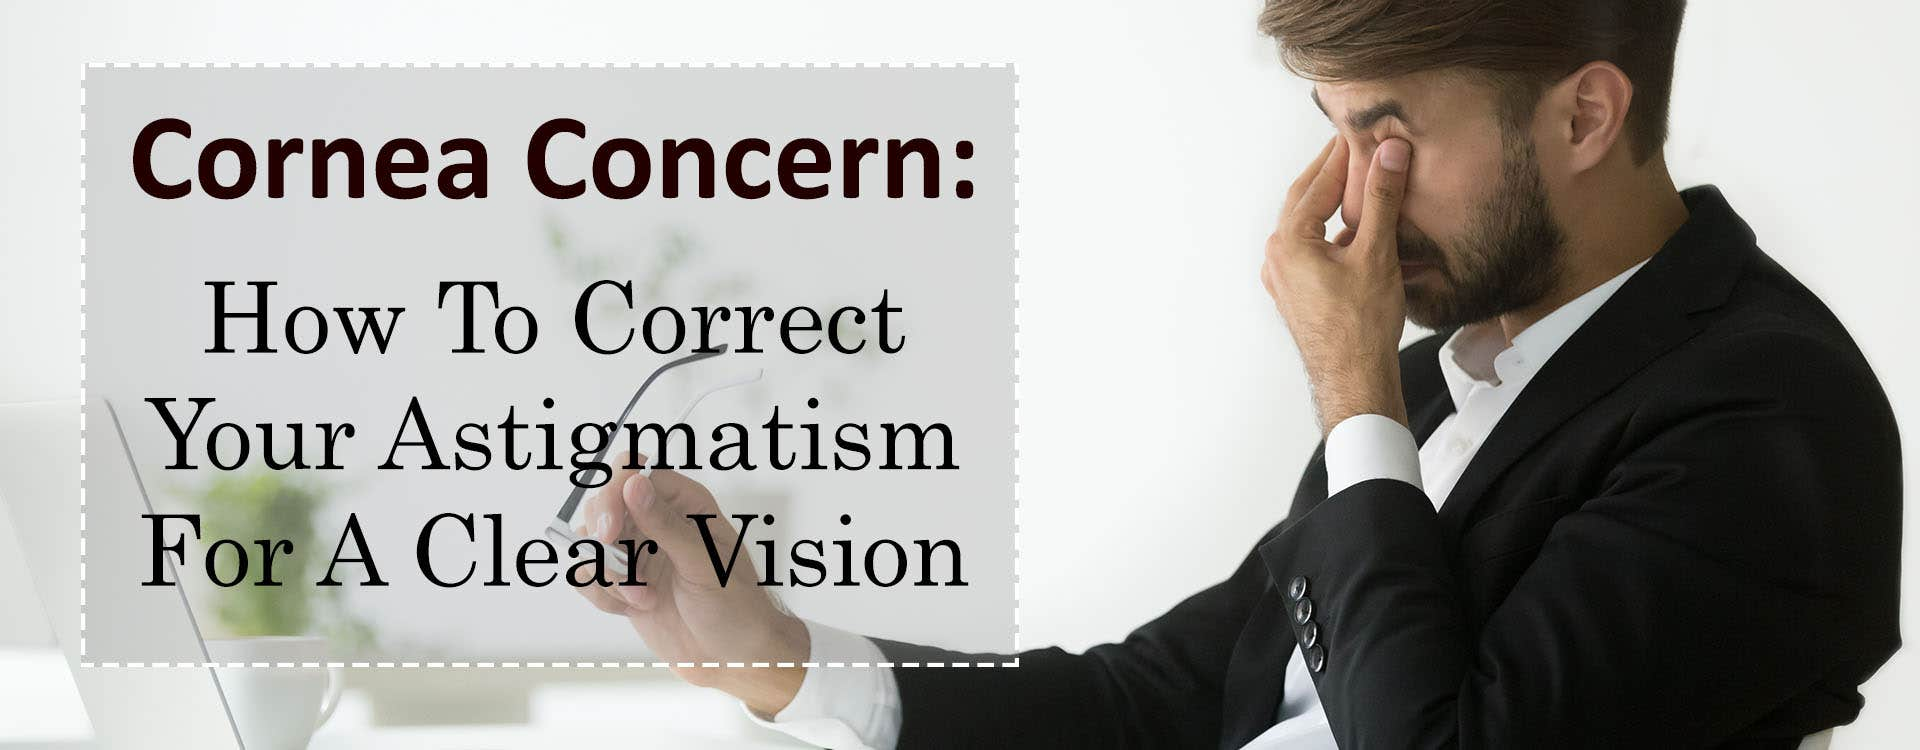 Cornea Concern: How To Correct Your Astigmatism For A Clear Vision